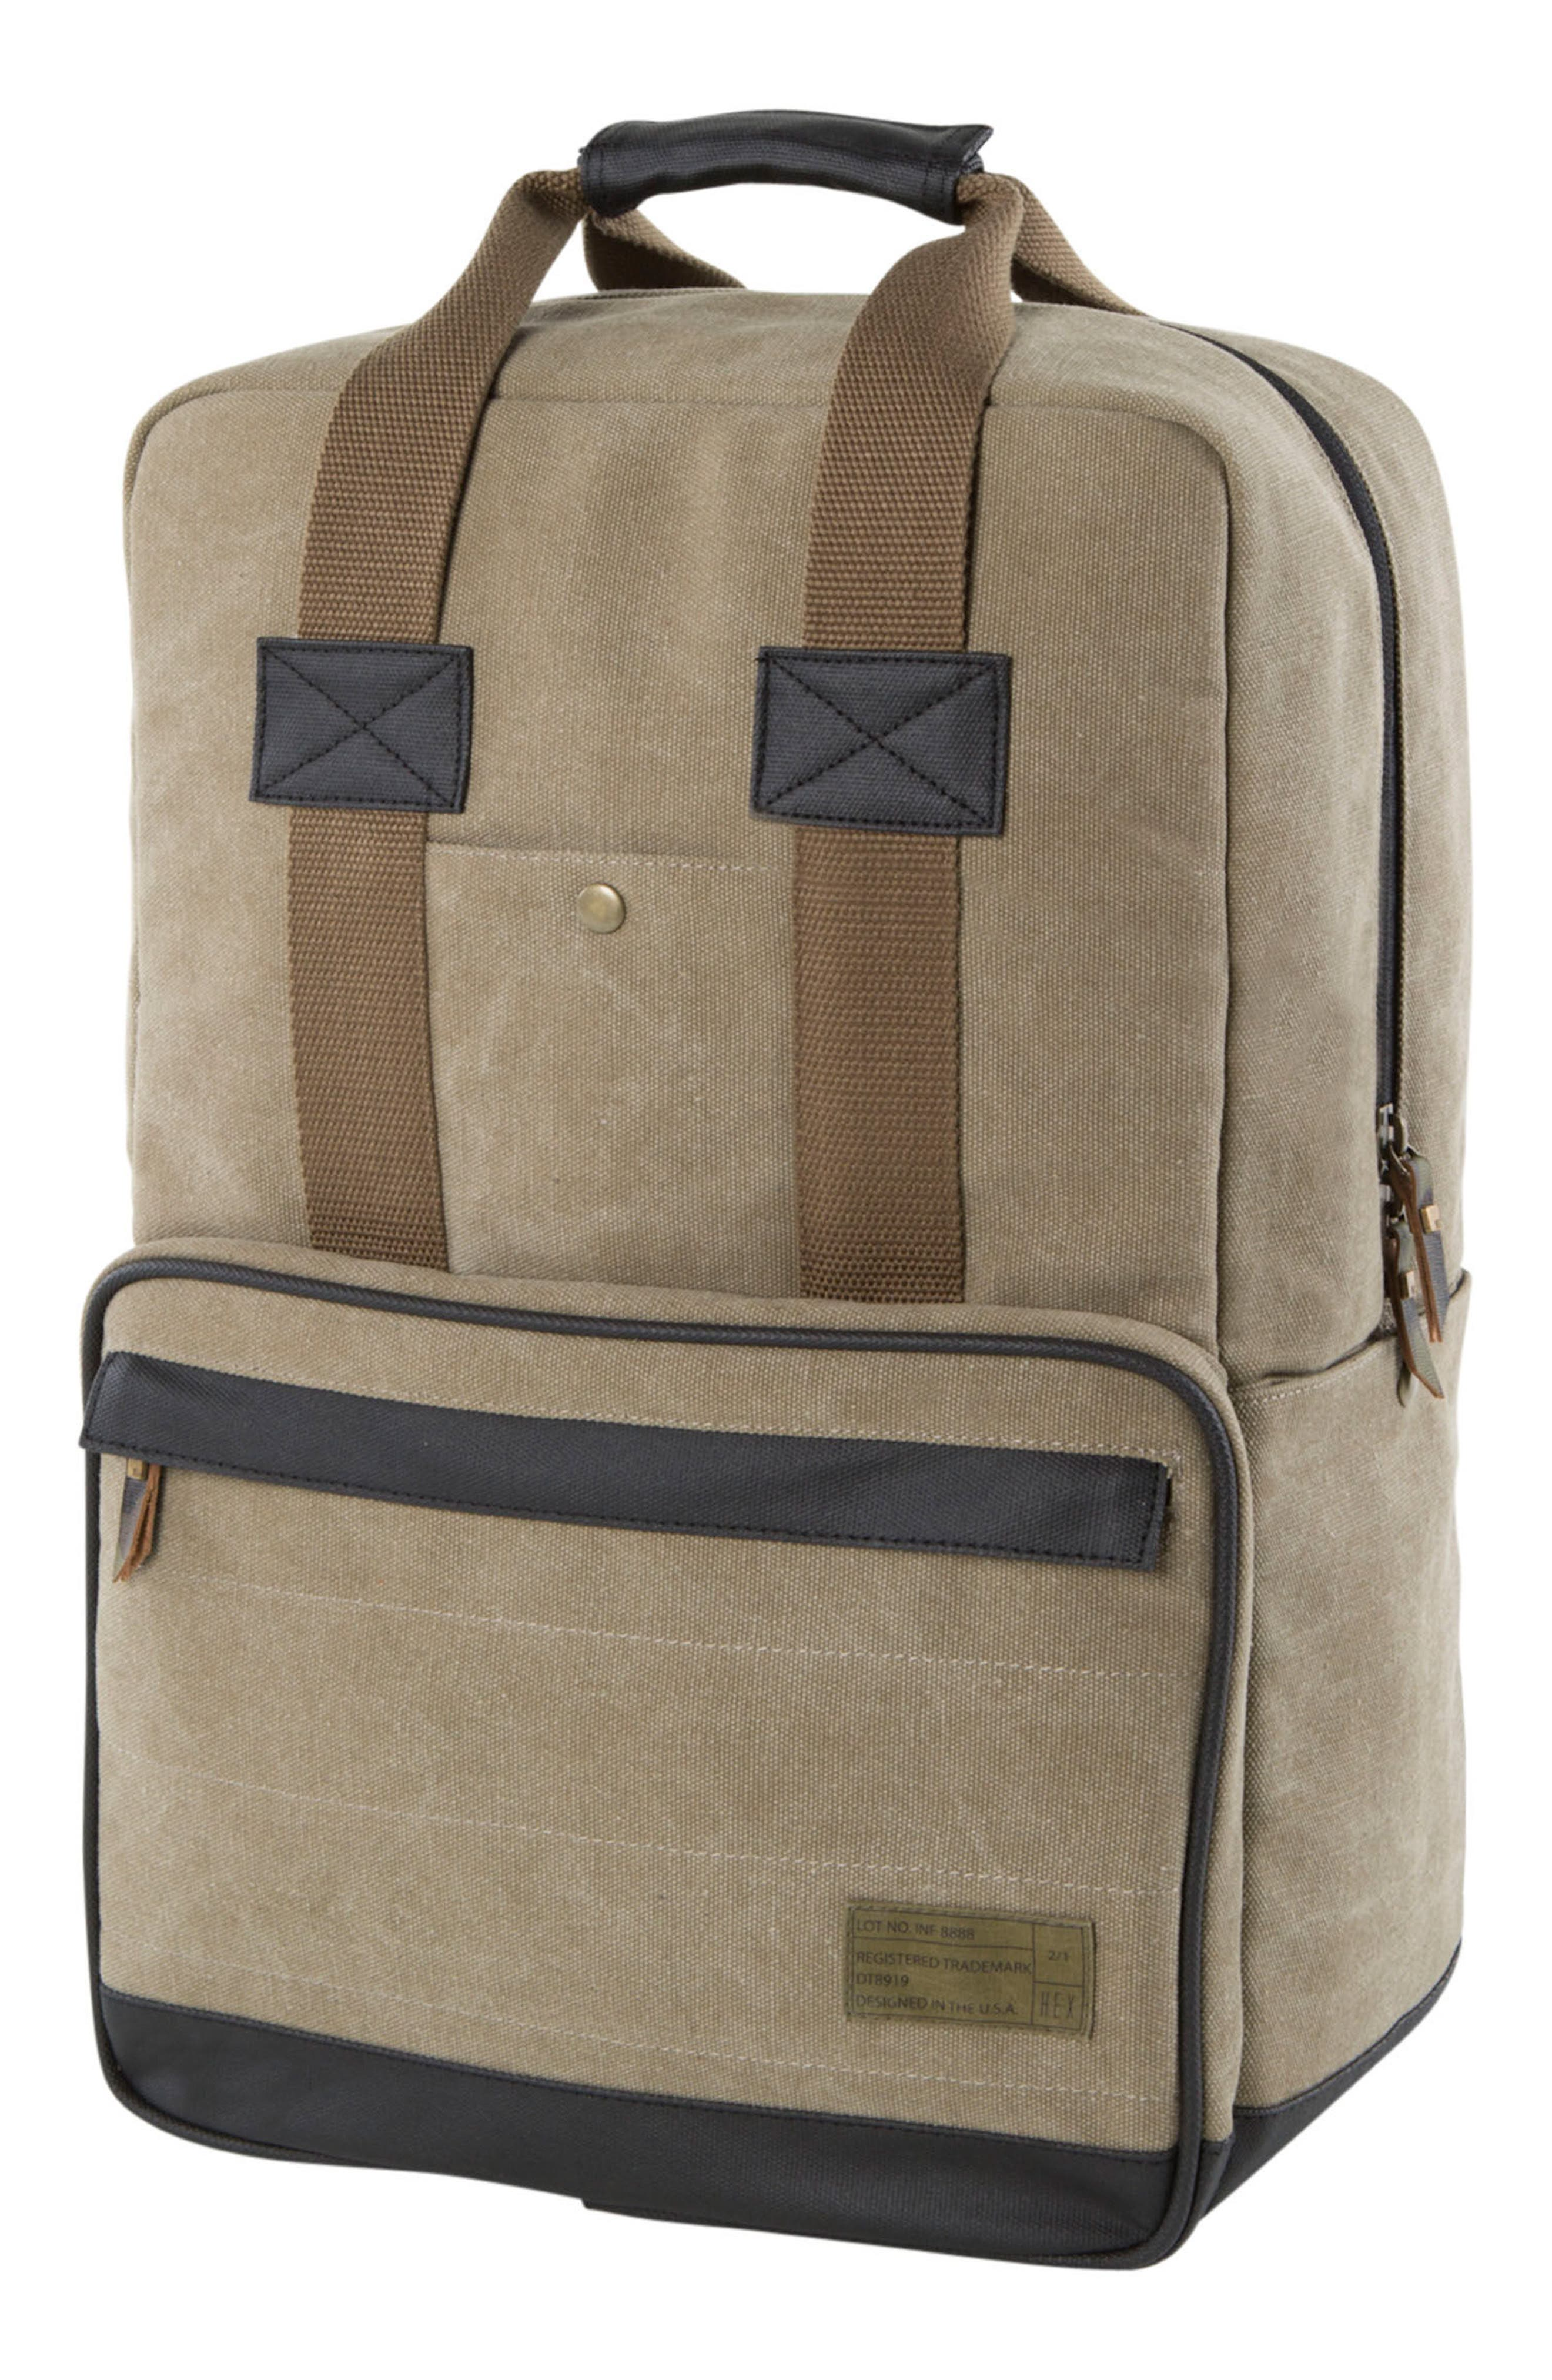 Supply Convertible Water Resistant Backpack,                             Main thumbnail 1, color,                             265